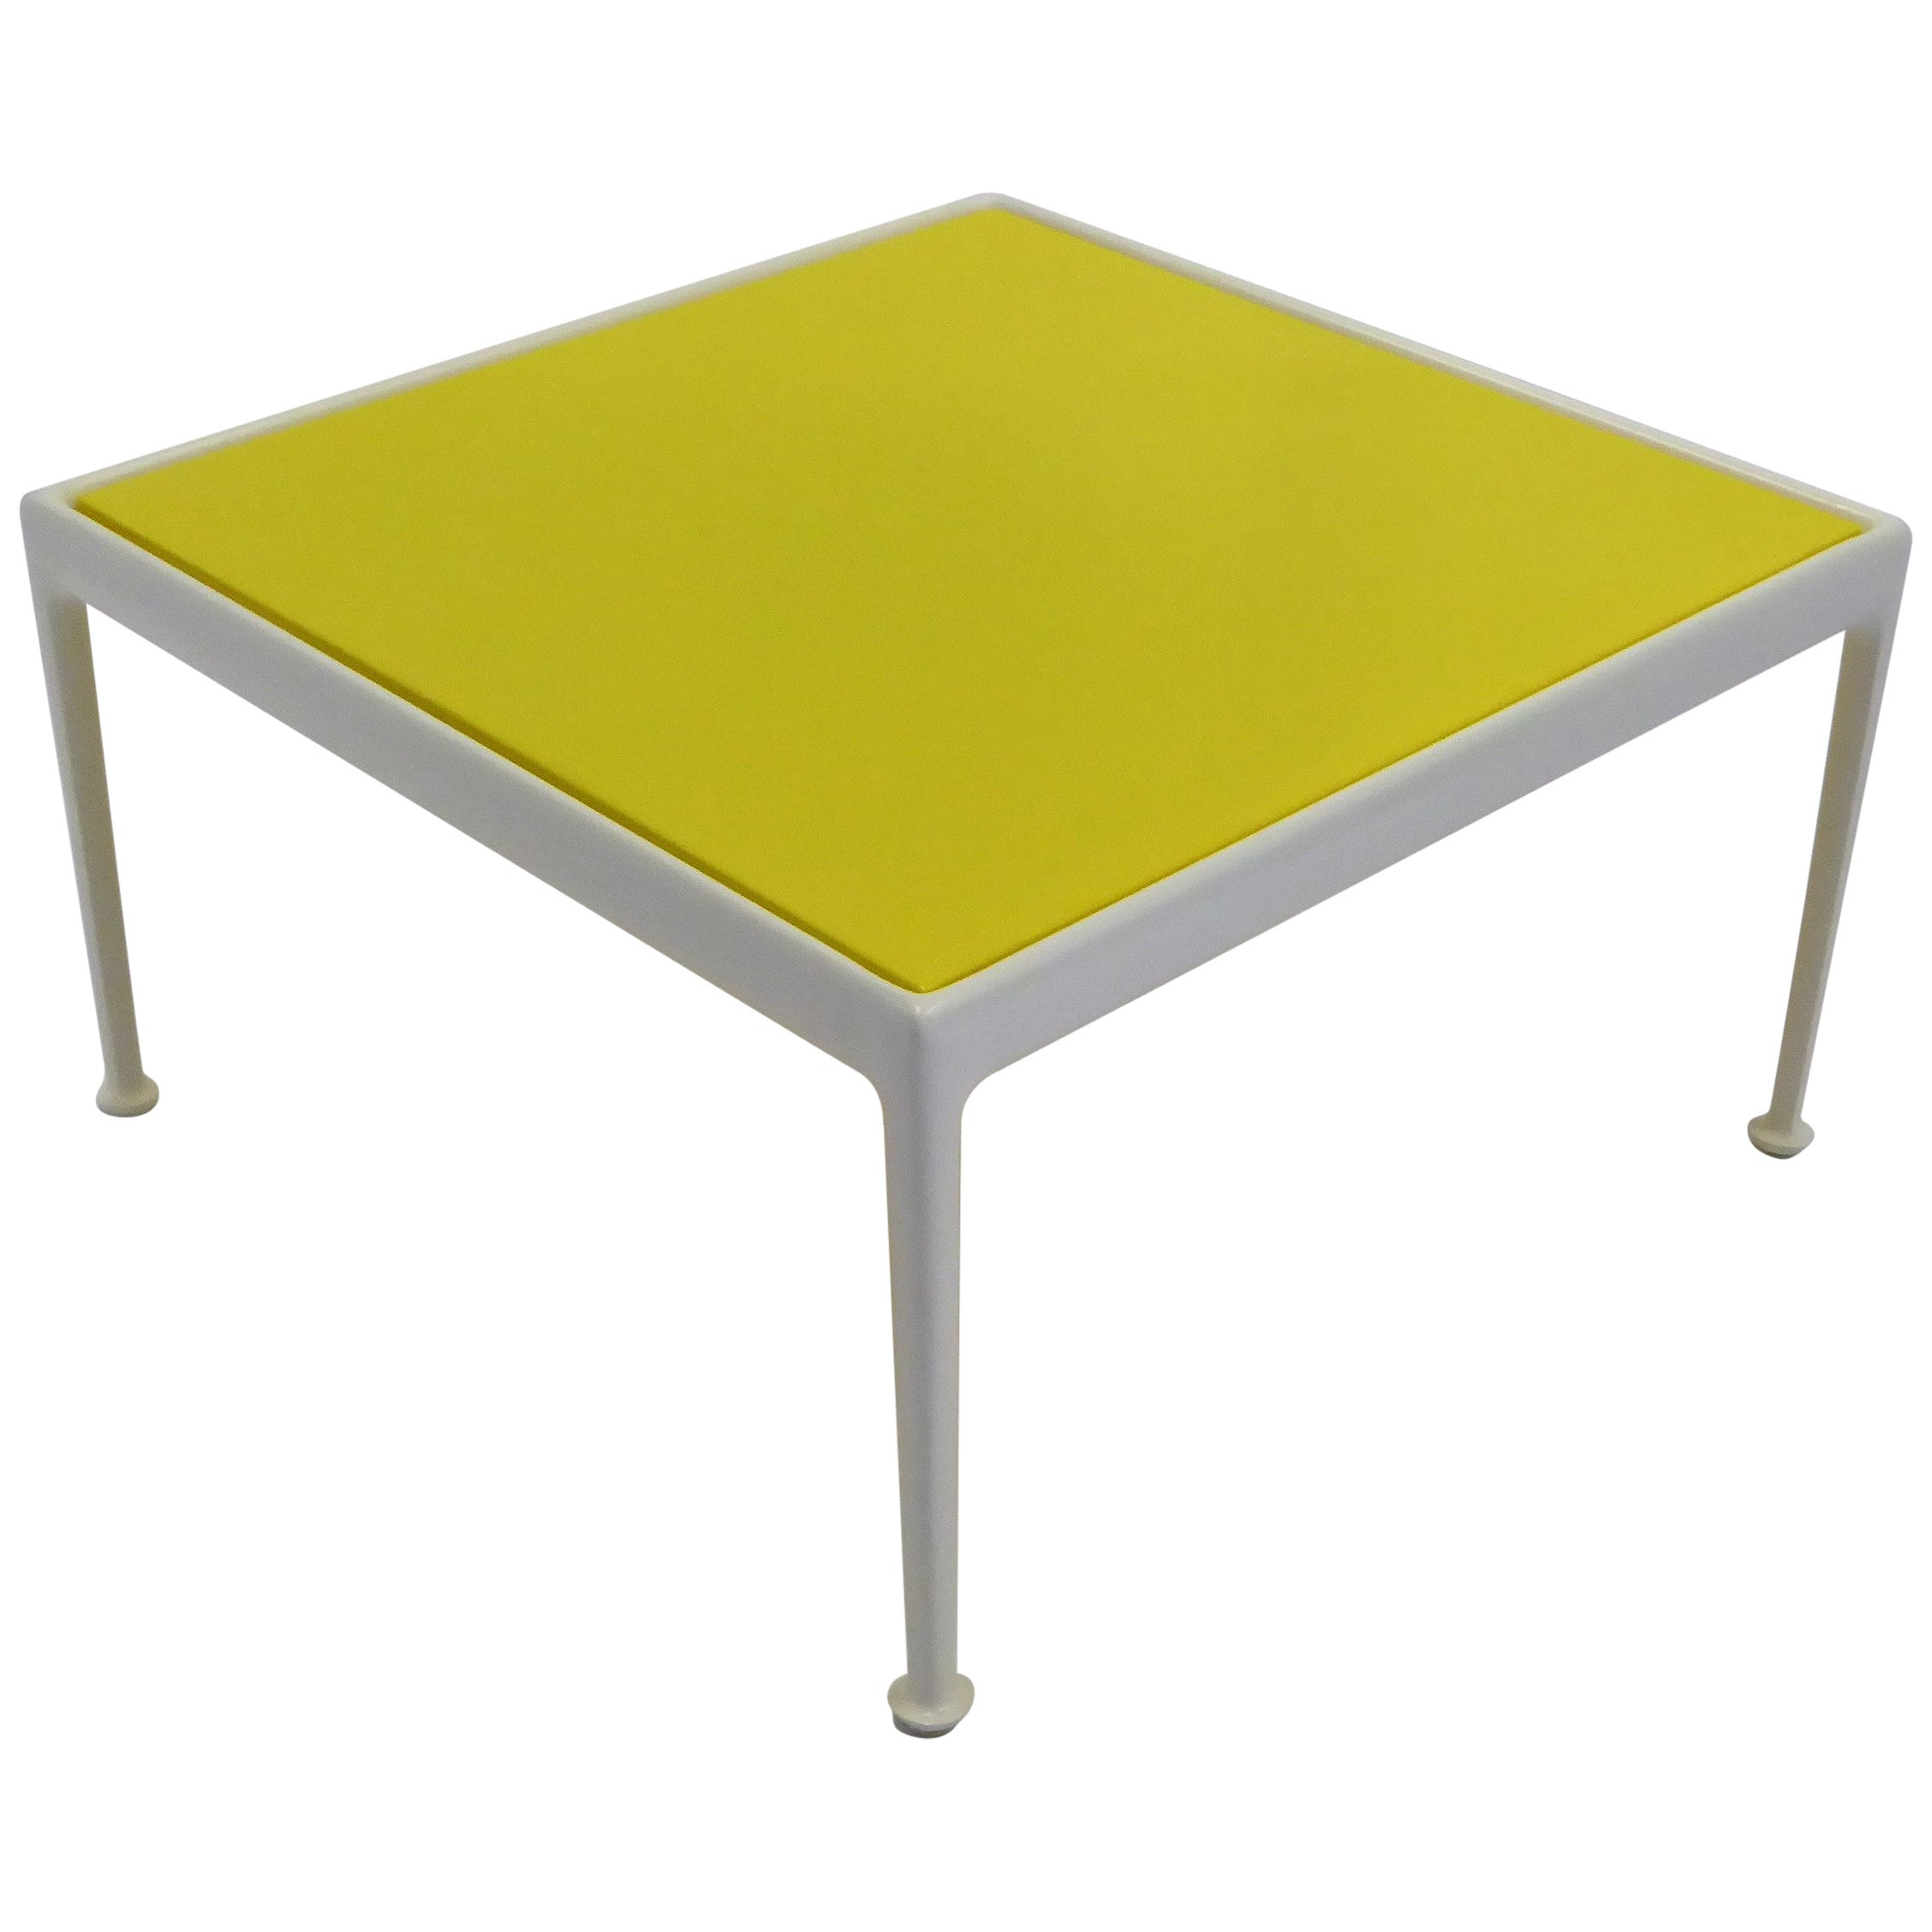 1960s Richard Schultz for Knoll Coffee Side Table